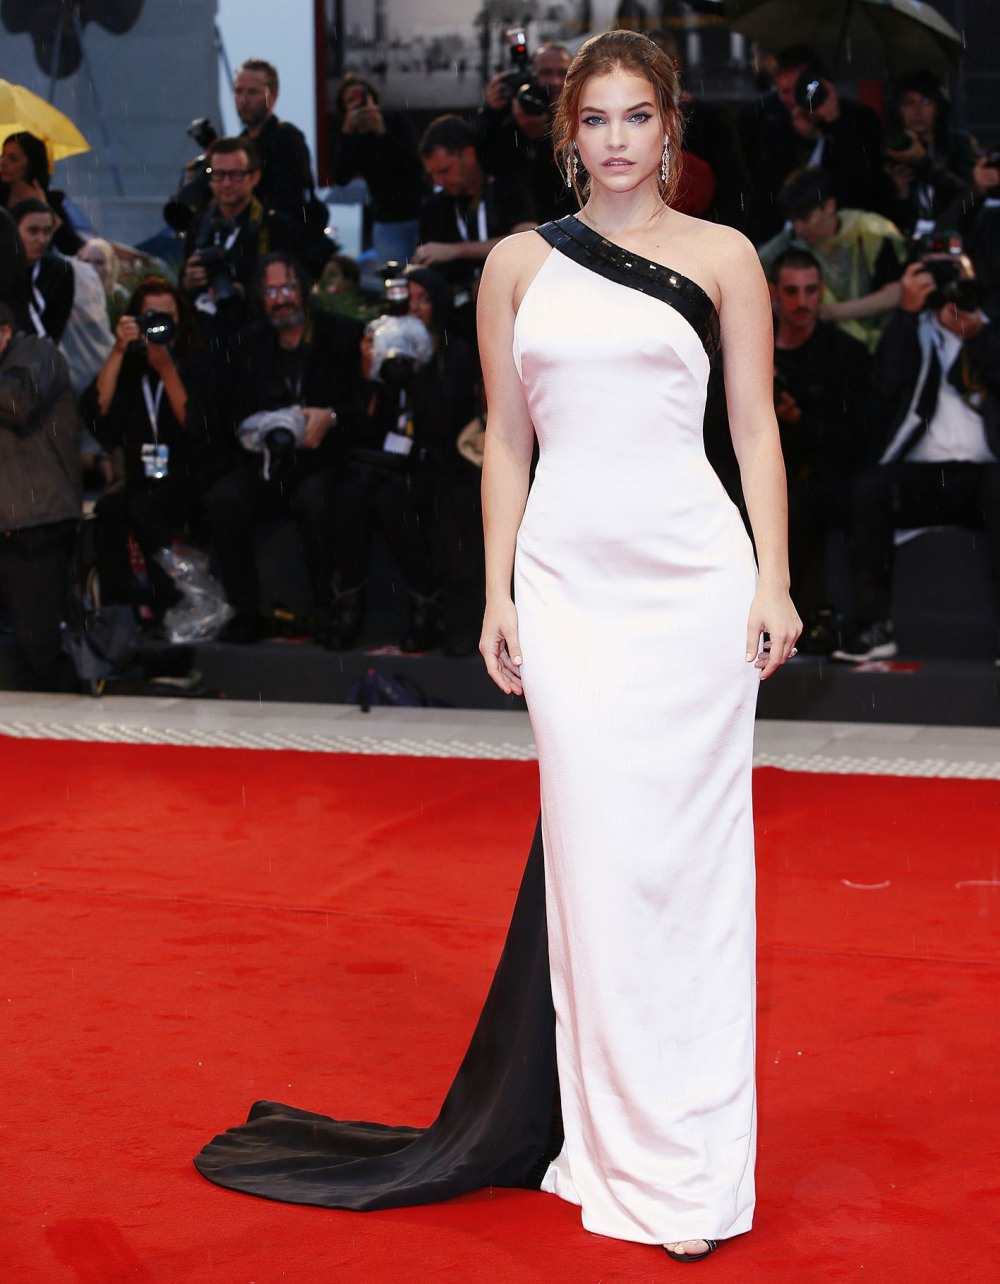 75th Venice International Film Festival - 'A Star Is Born' - Premiere